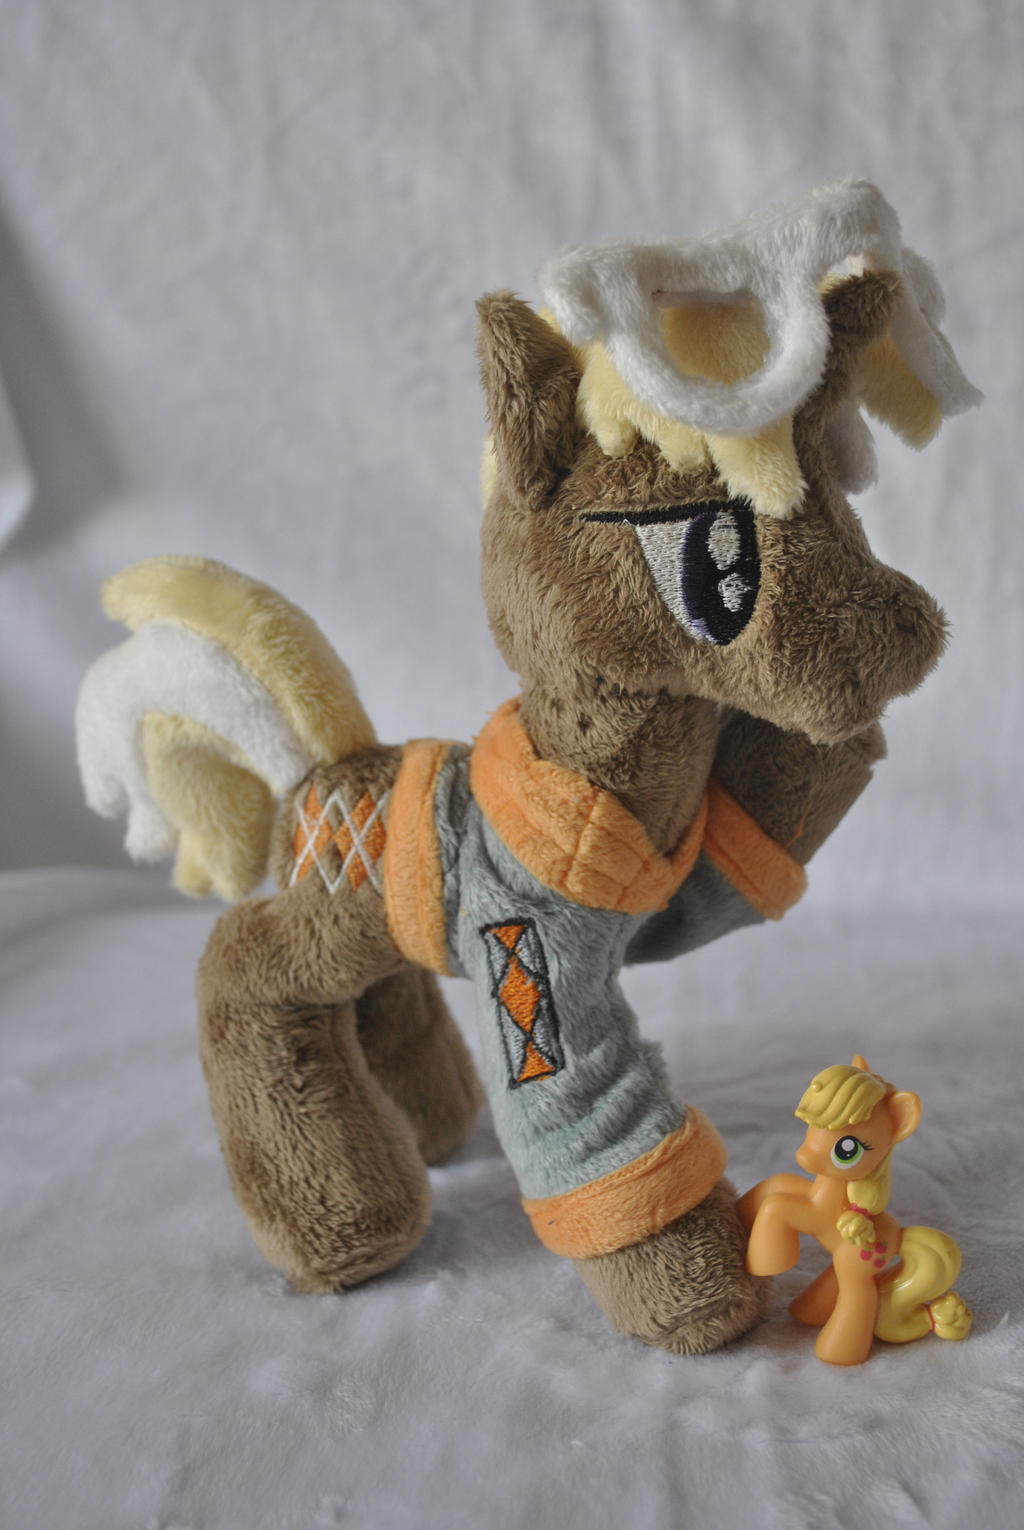 Plush pony Trenderhoof by Ketikaket